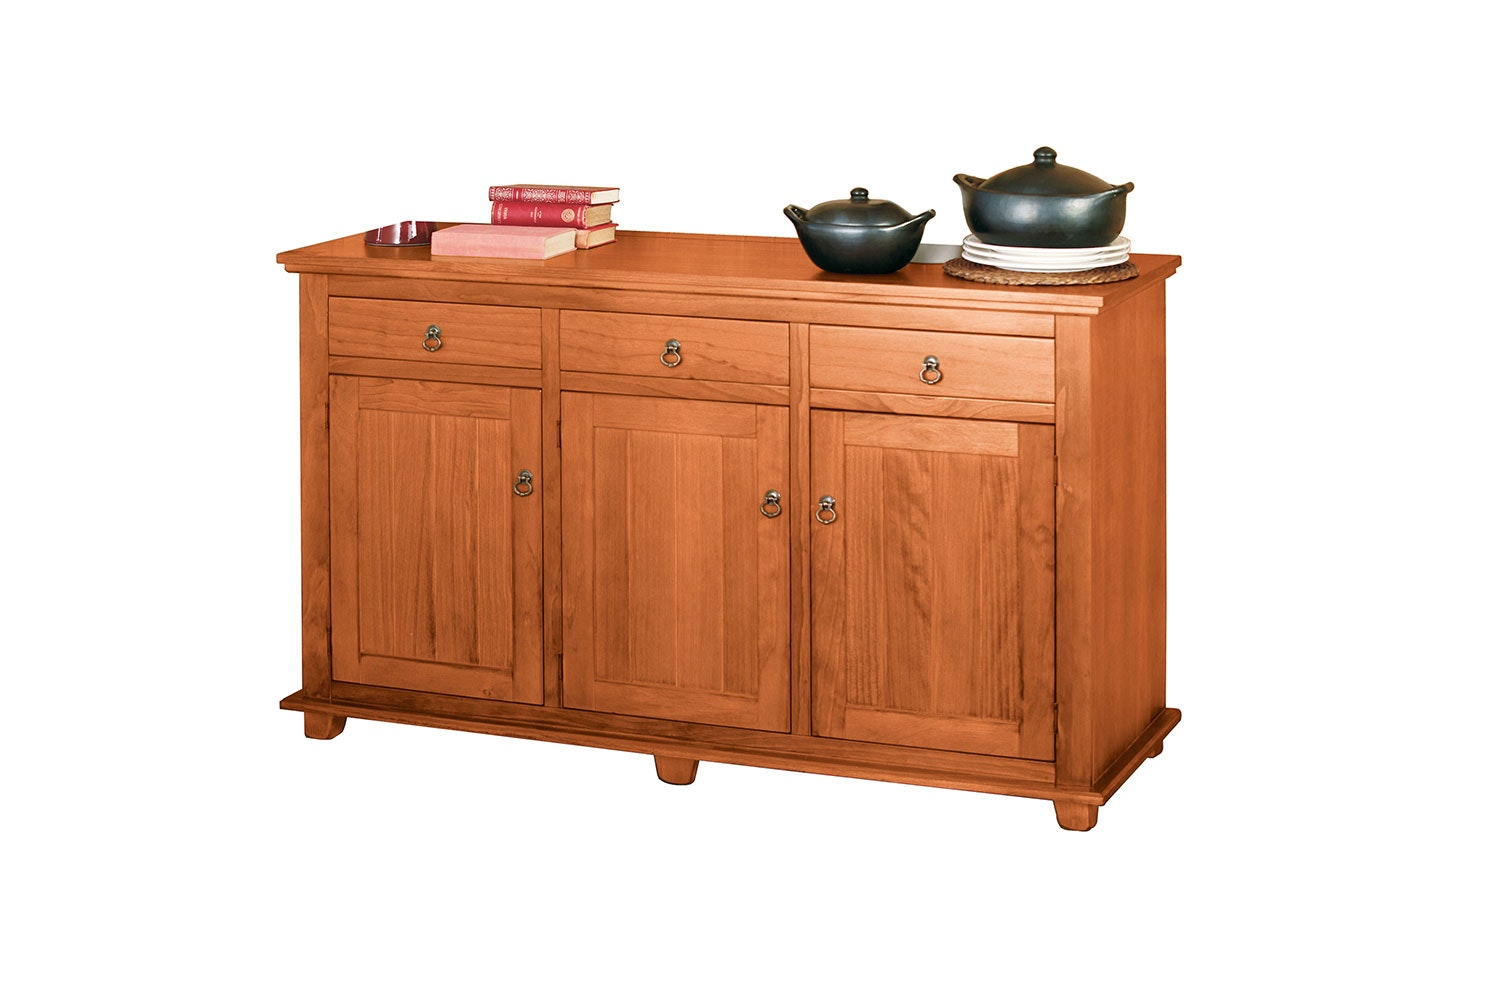 Ferngrove 3 Drawer Buffet by Coastwood Furniture